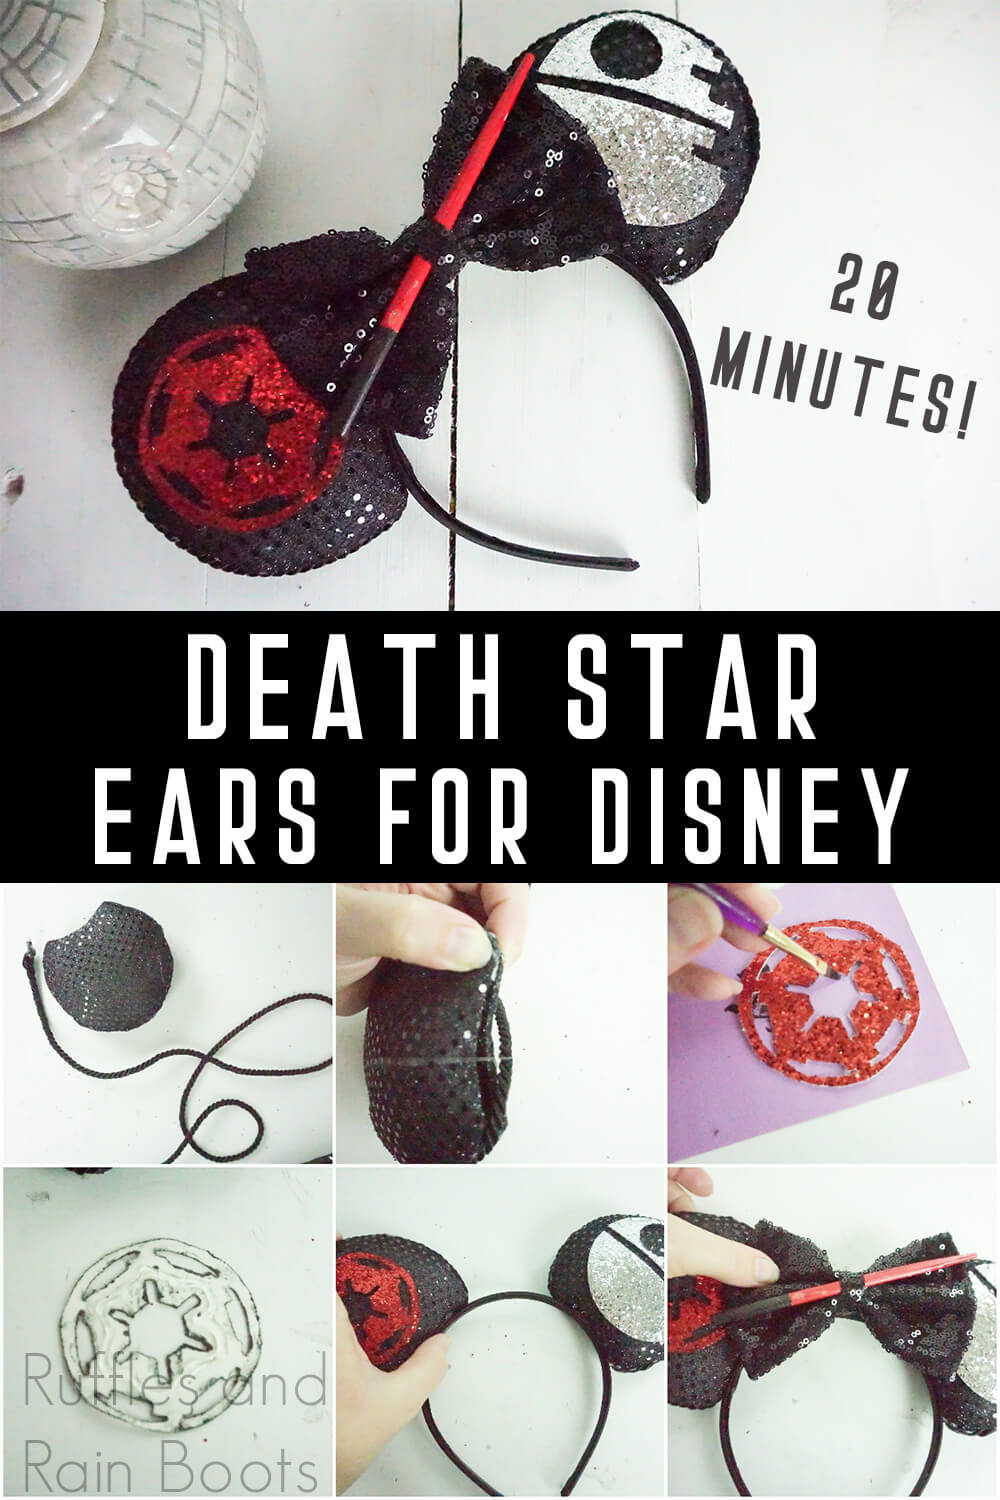 photo collage of death star mickey ears for star wars galaxy's edge with text which reads 2- minutes! death star ears for disney